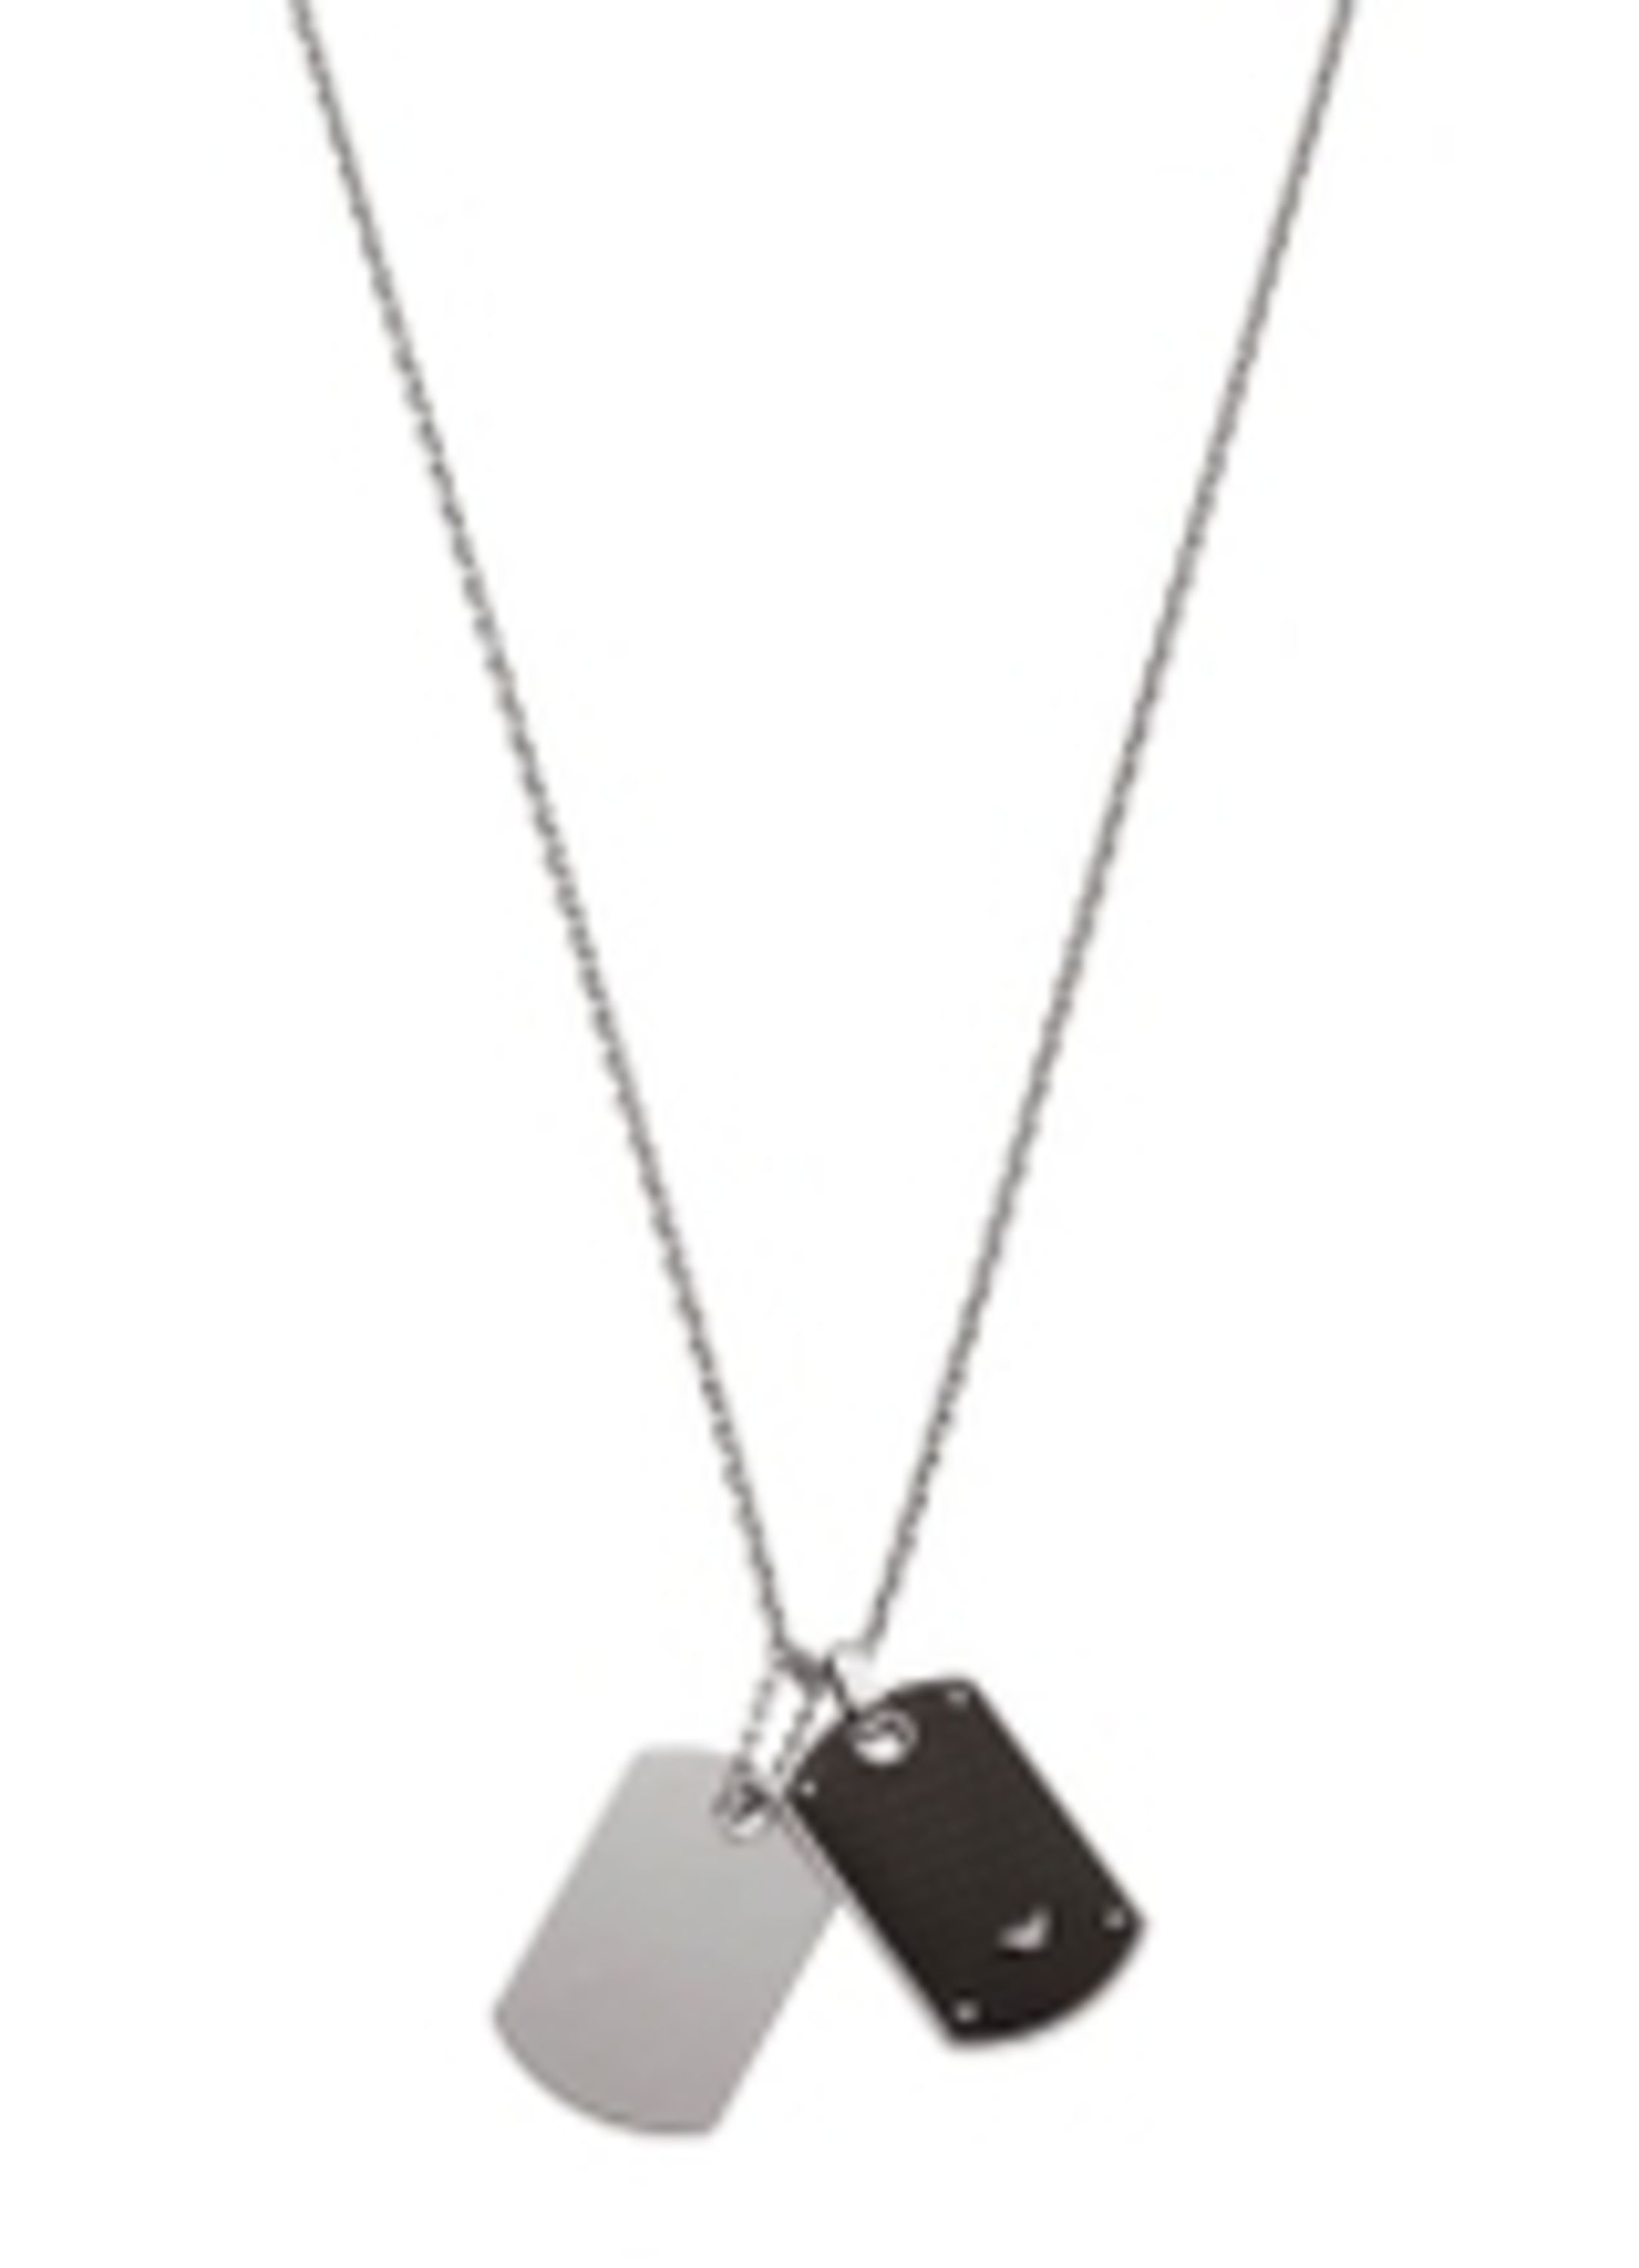 Emporio Armani Egs1601040 mens necklace Silver Metallic